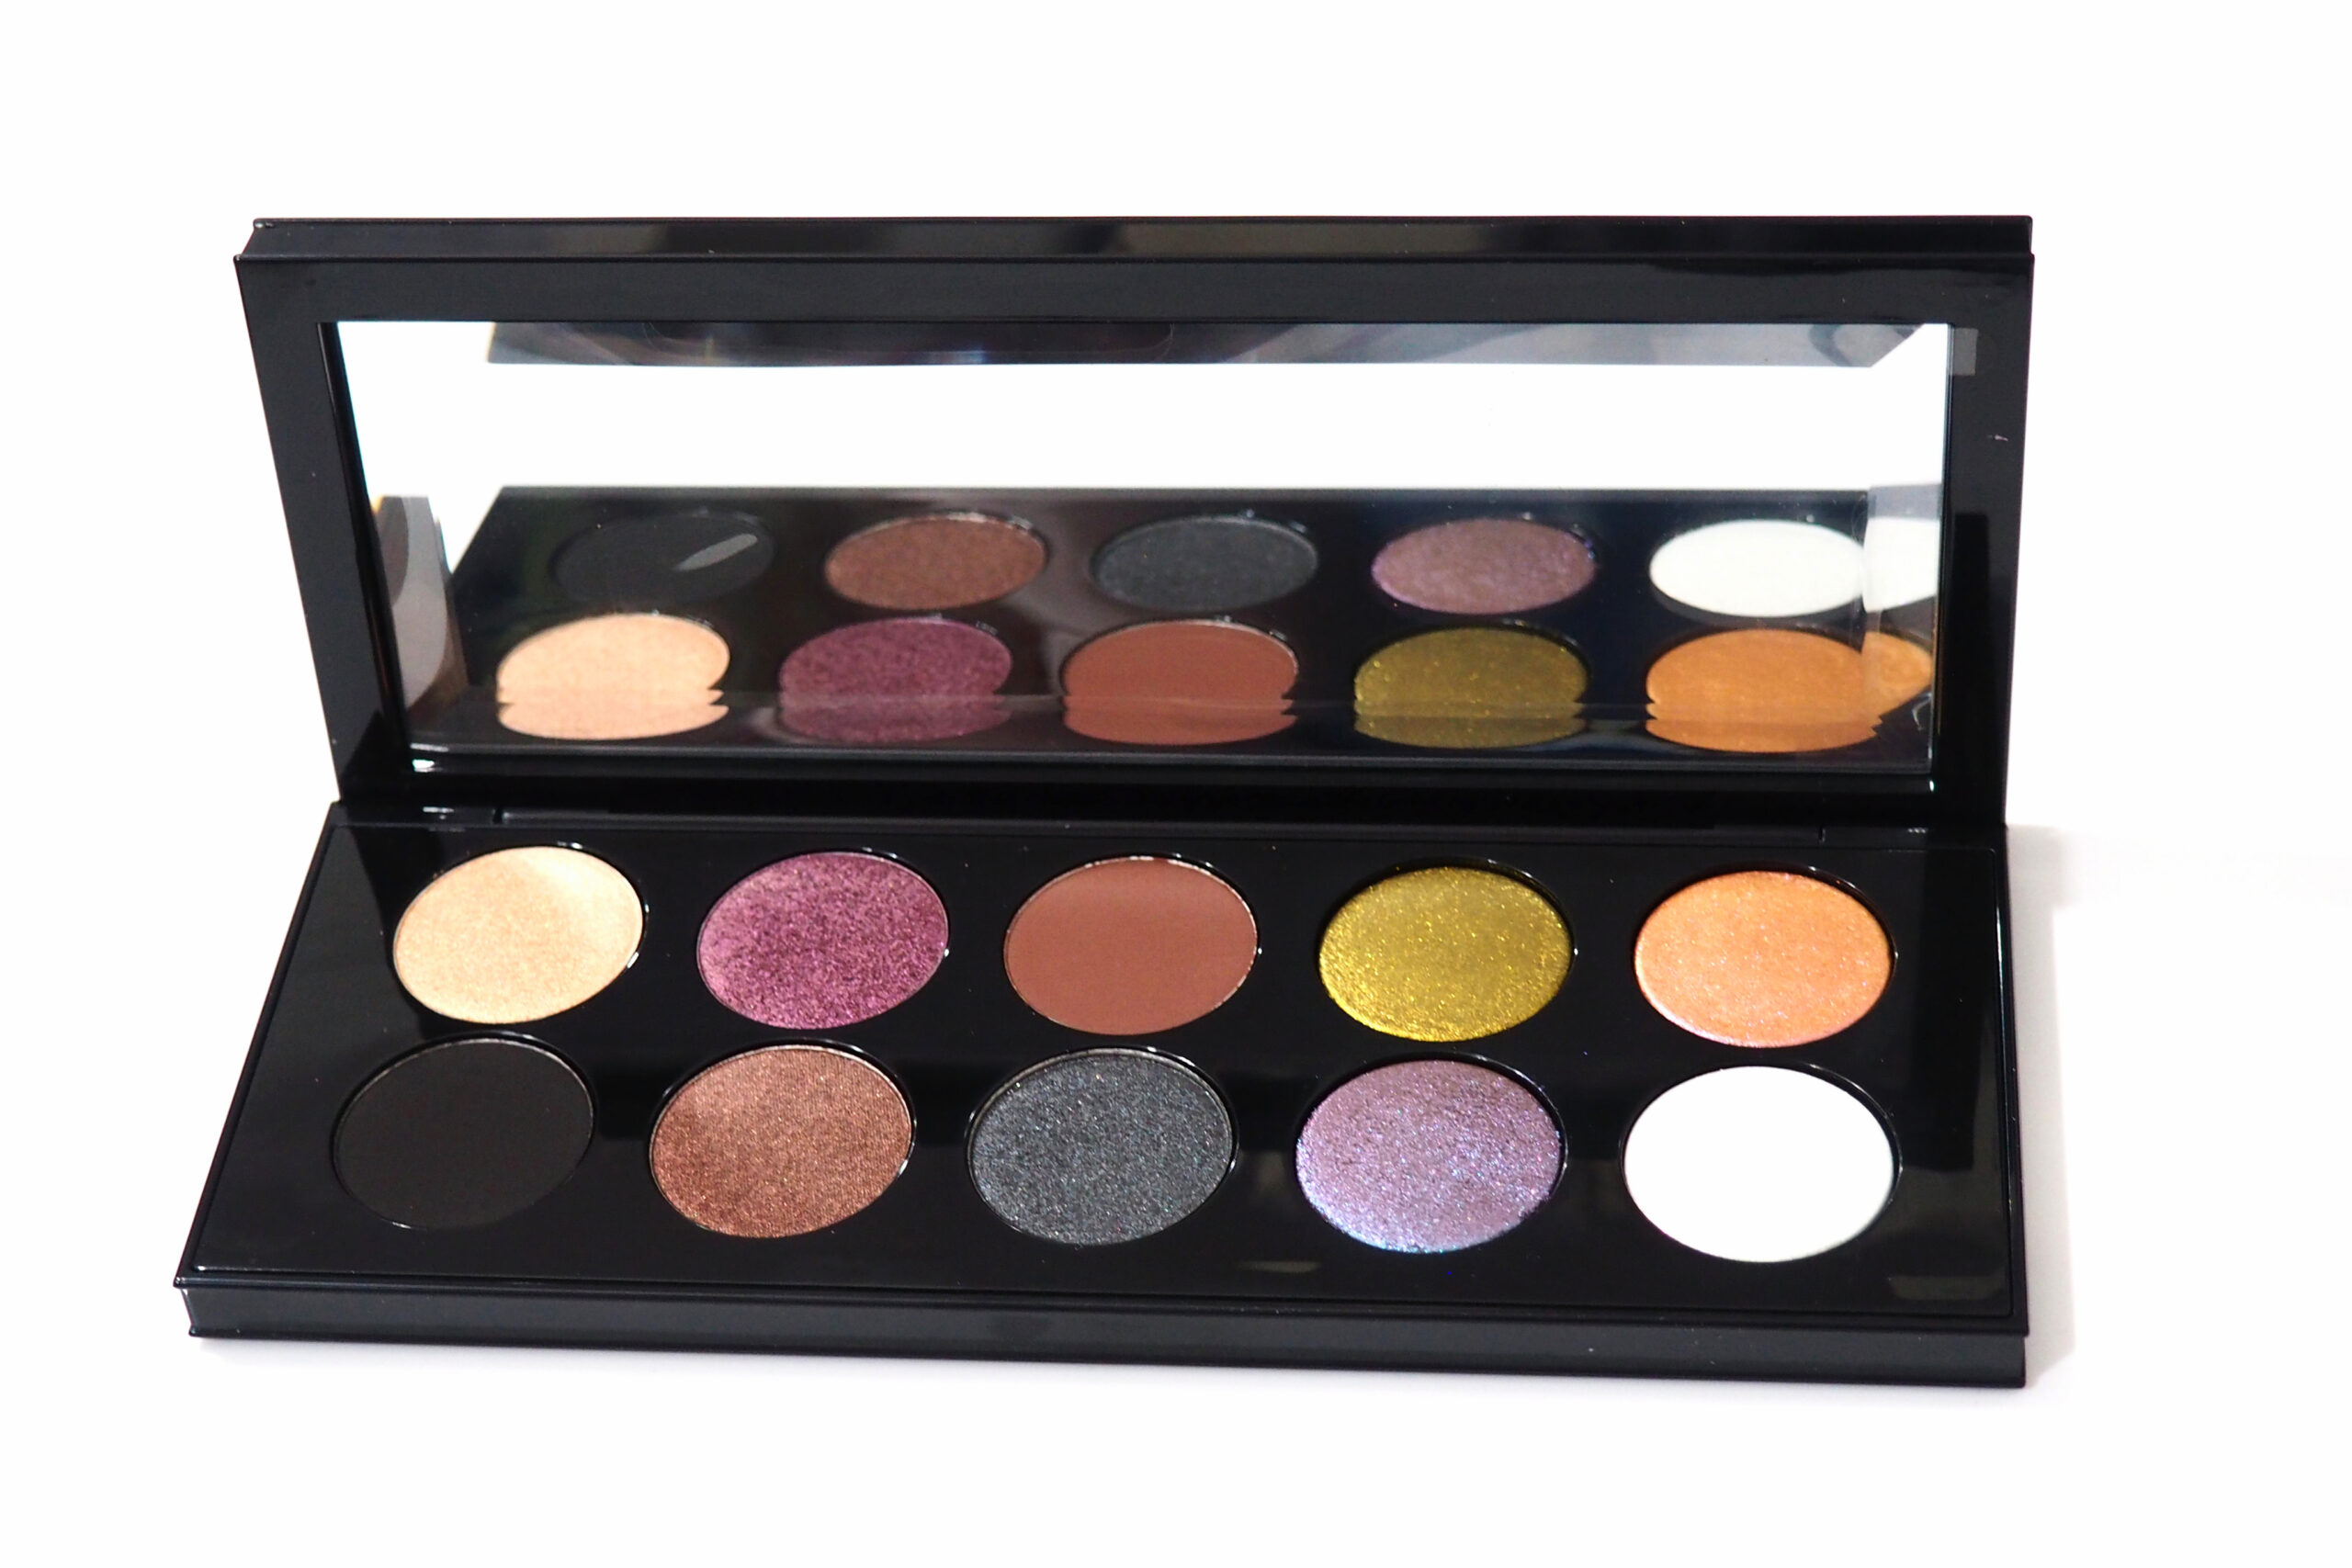 Pat McGrath Labs Mothership III Subversive Eyeshadow Palette Review / Swatches